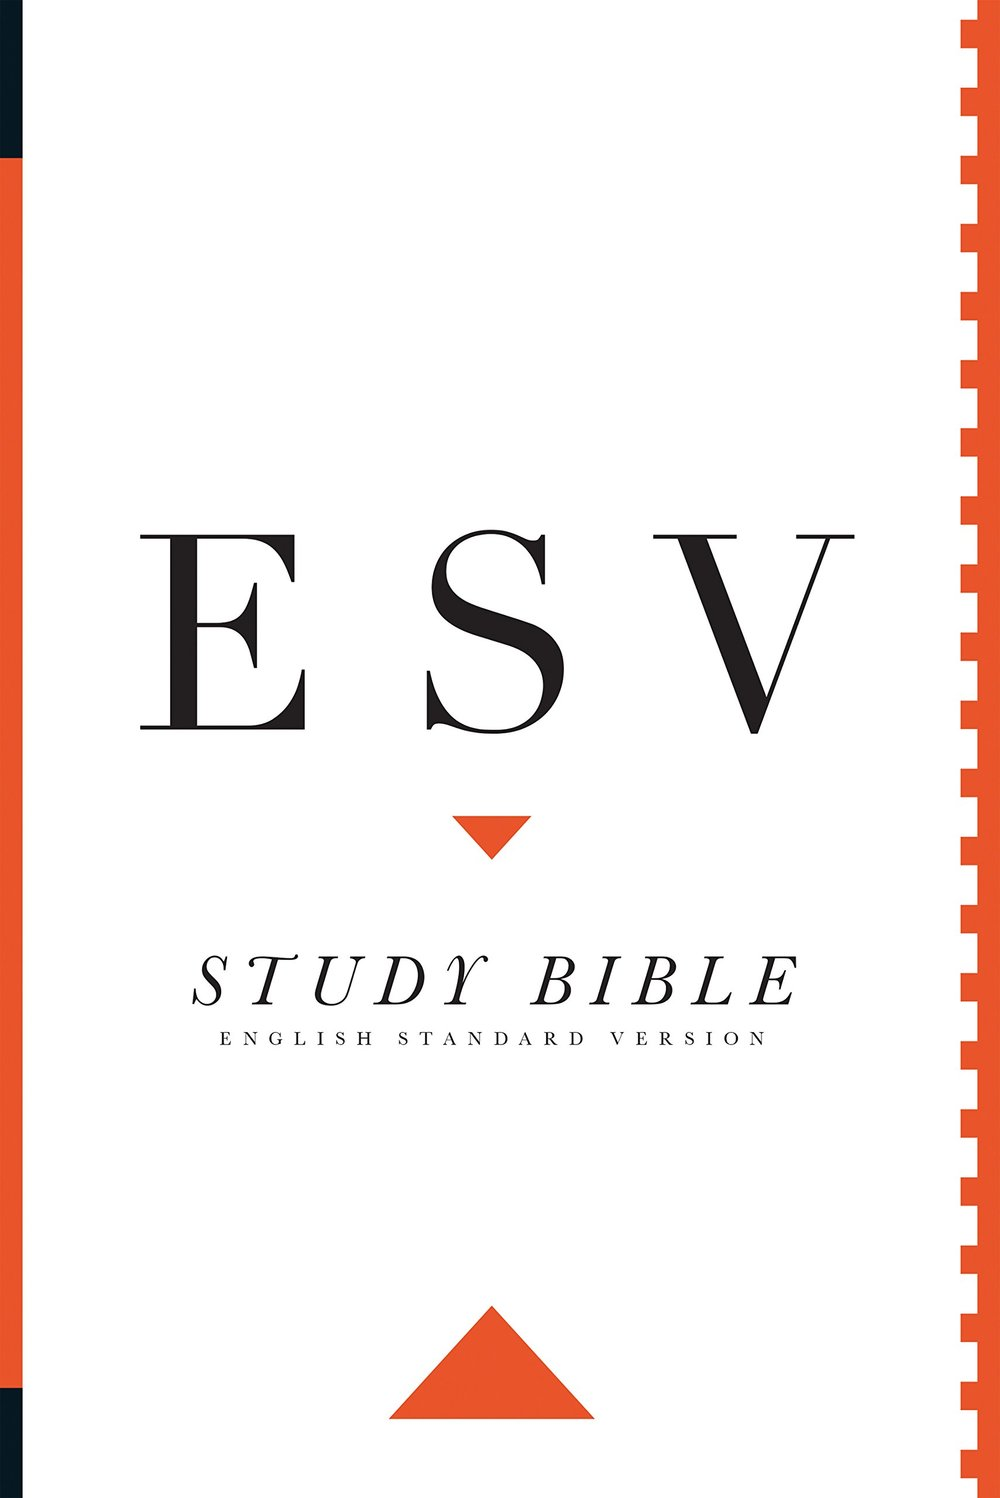 ESV study bible - Click Image to Learn More…